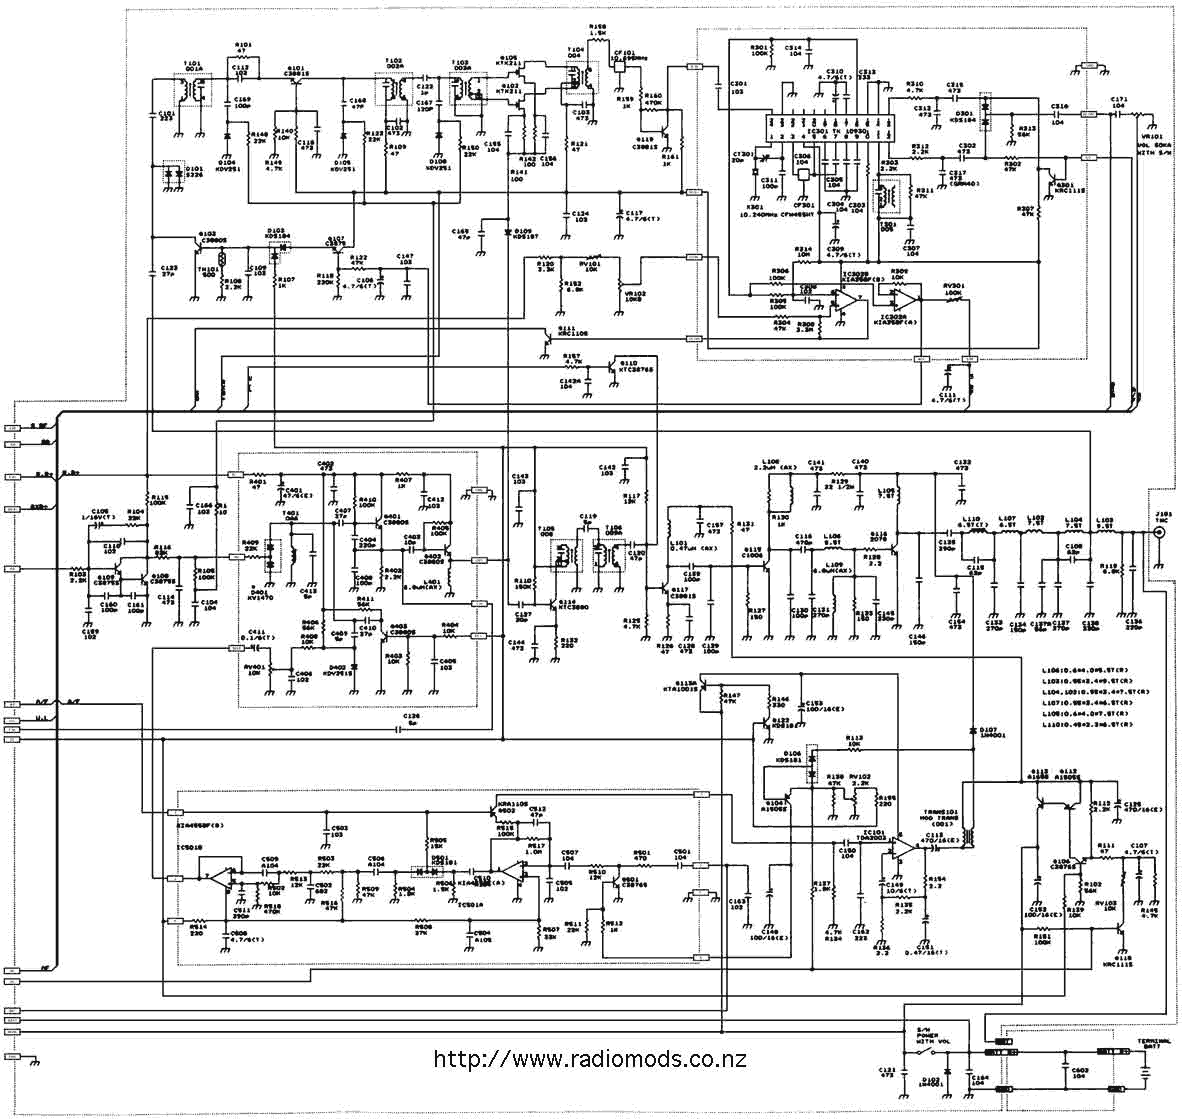 Go To the President Randy Circuit Diagram